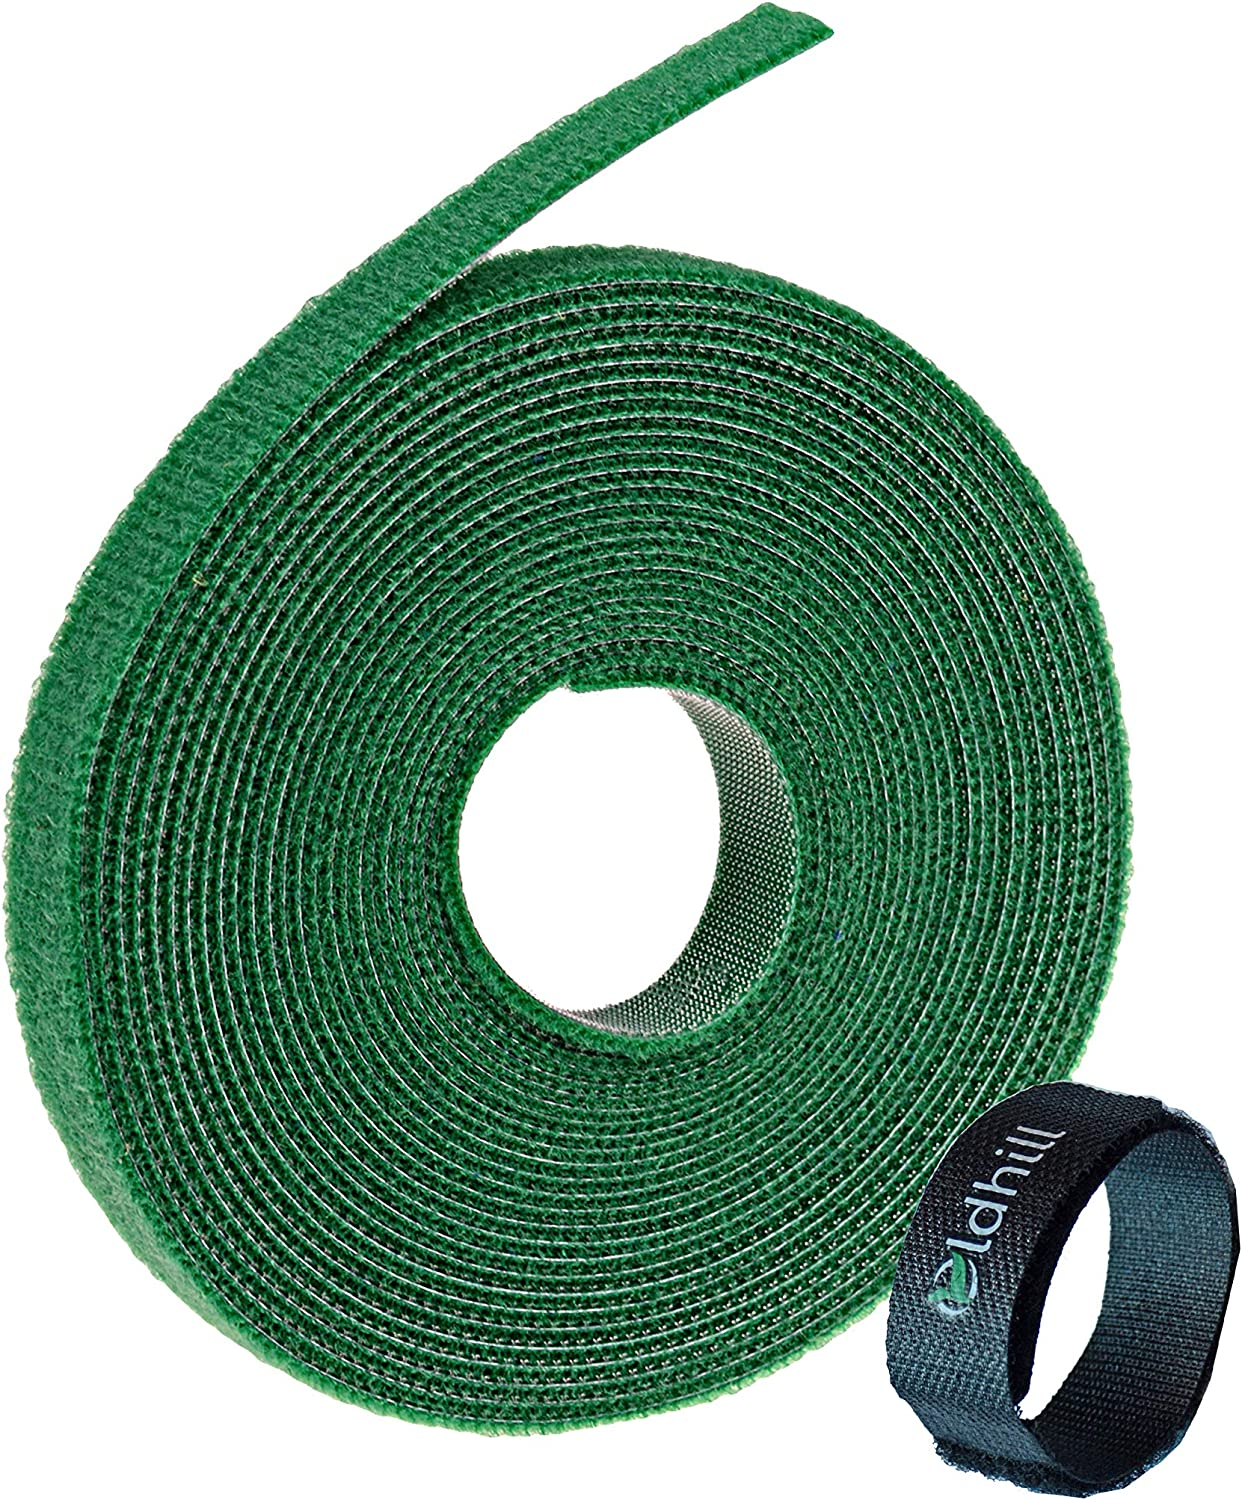 "Oldhill Fastening Tapes Hook and Loop Reusable Straps Wires Cords Cable Ties - 1/2"" Width, 15' x 3 Rolls (Green)"